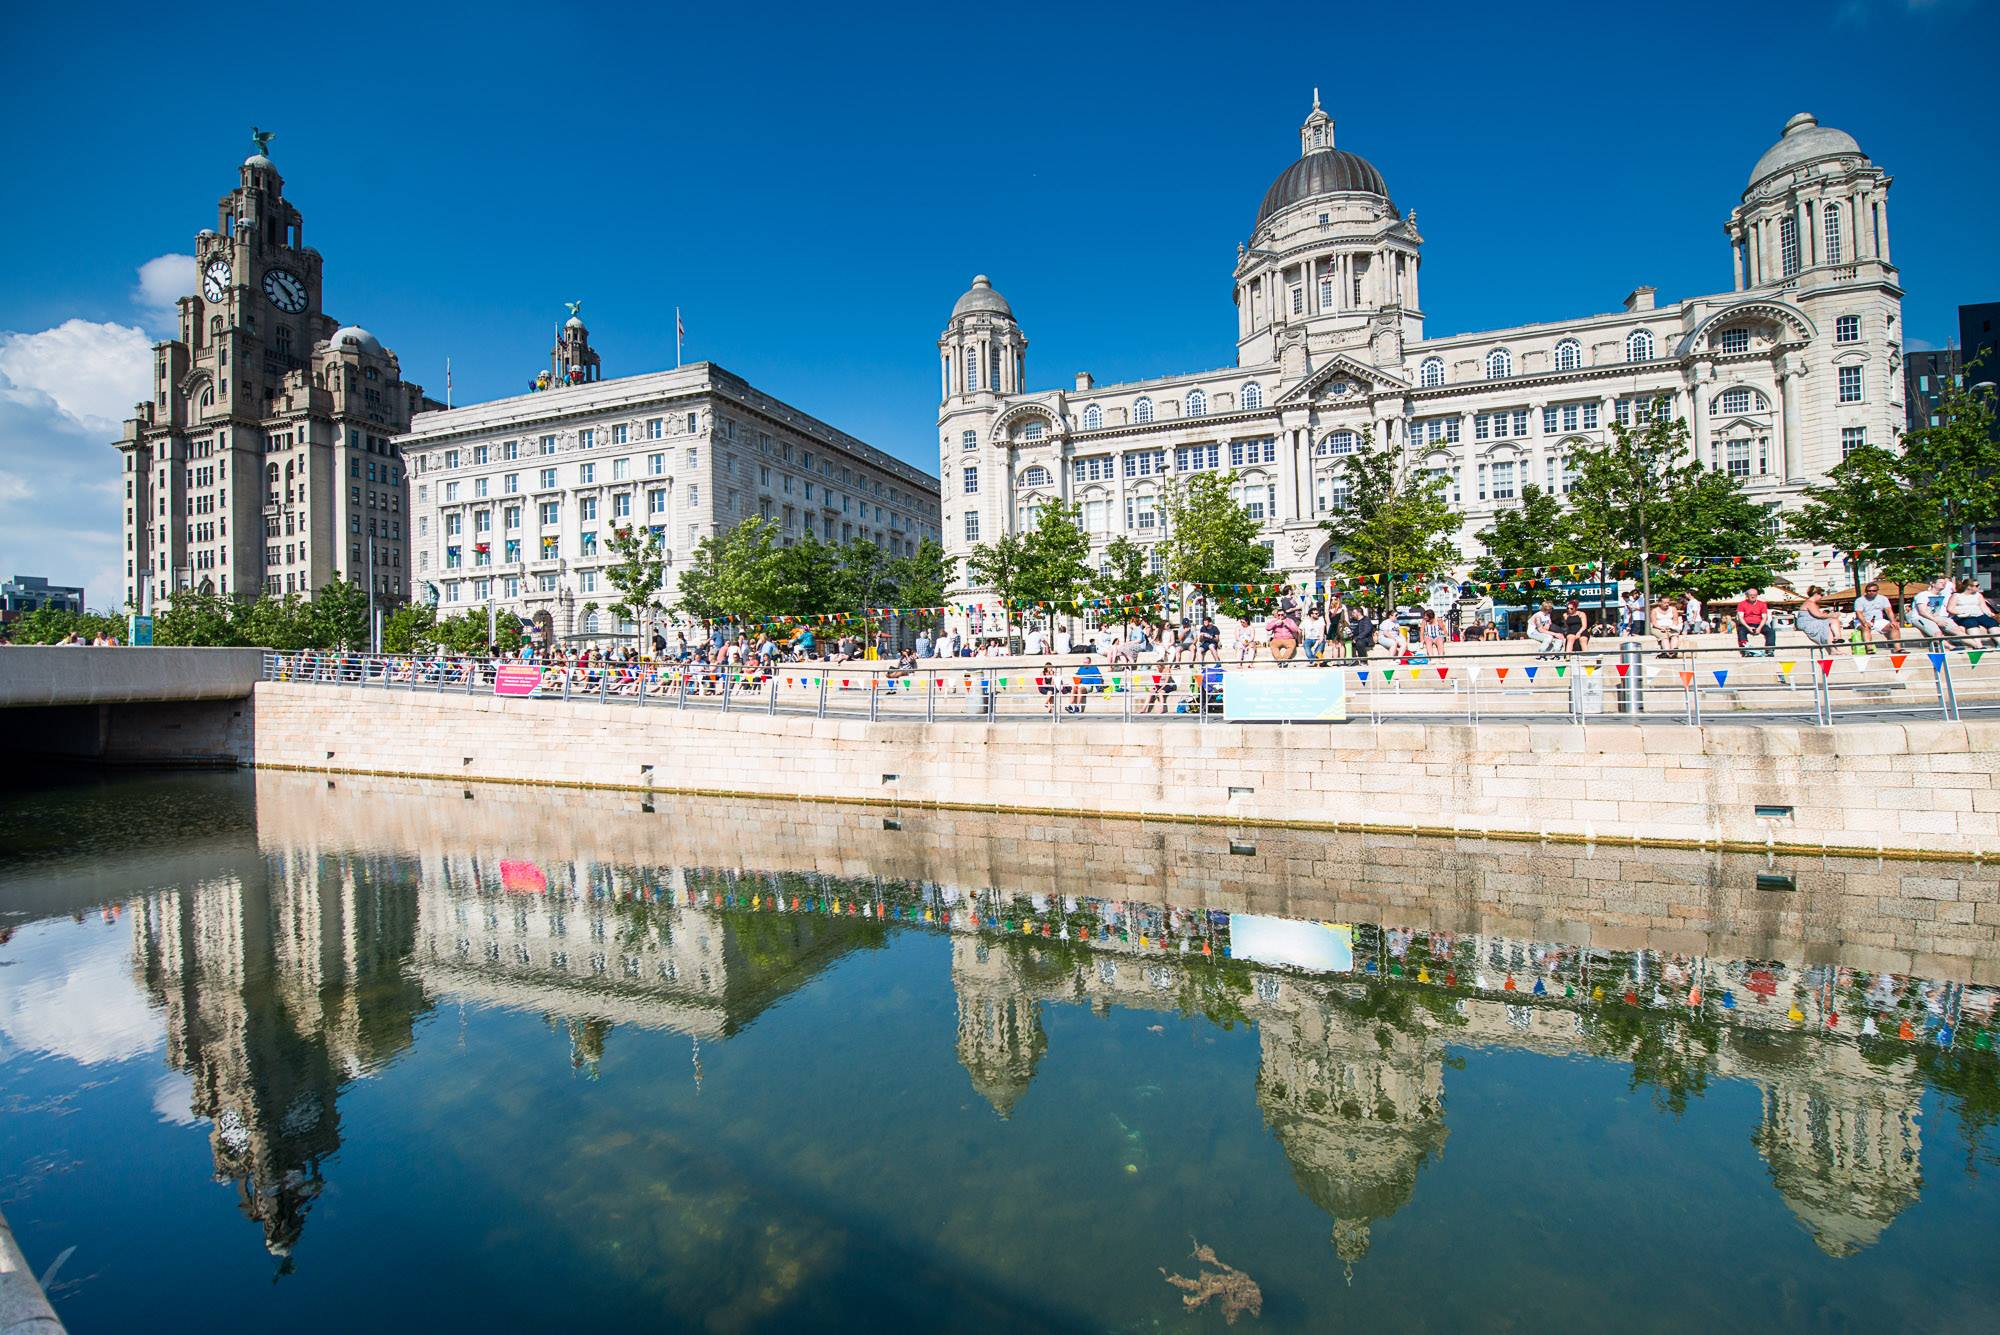 48 summery hours in Liverpool